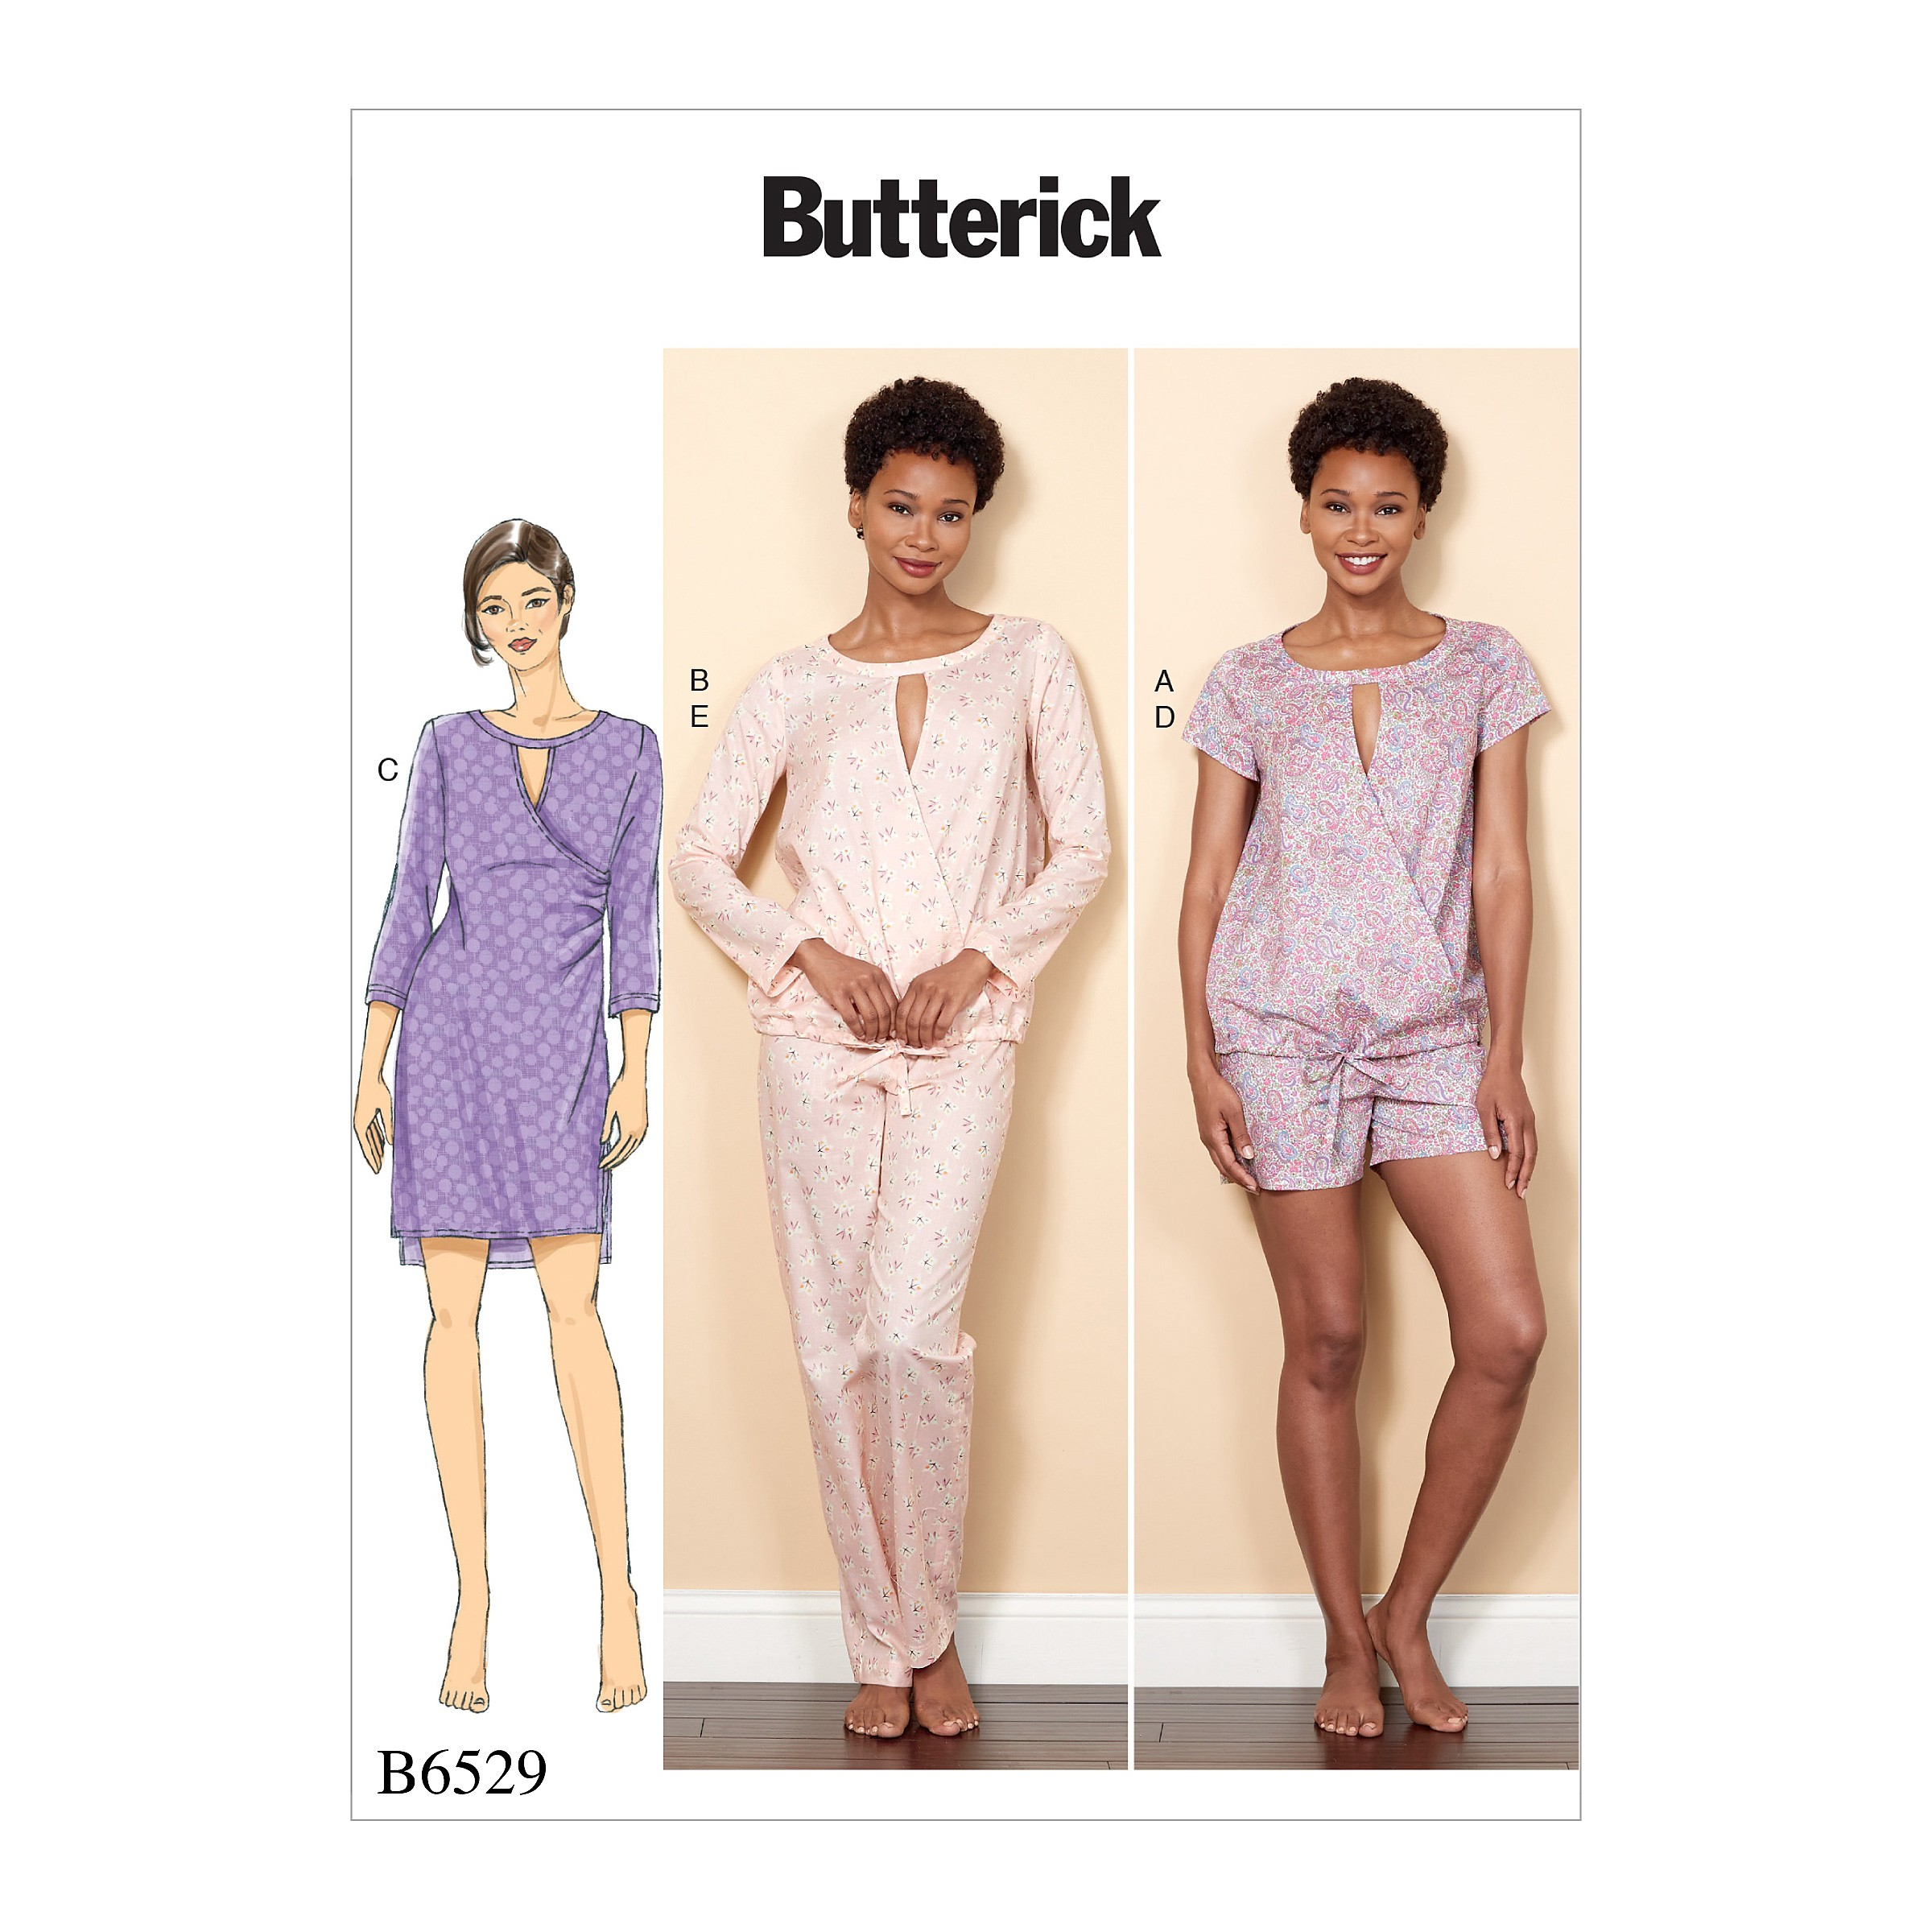 Butterick Sewing Pattern 6529 Misses' Crossover Top, Dress, Shorts And Trousers